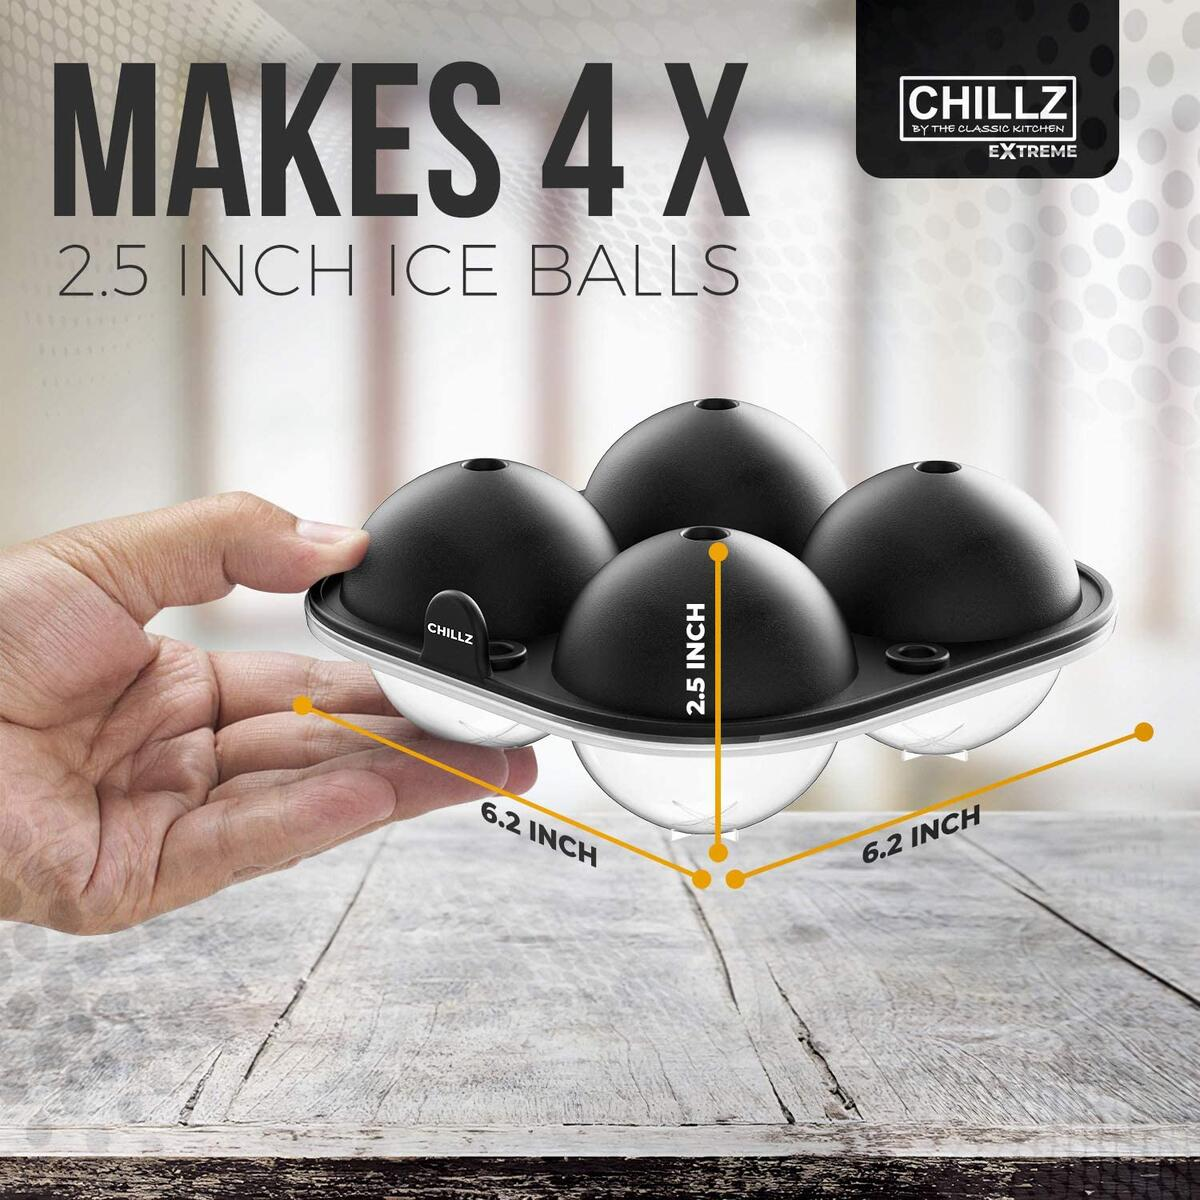 Chillz Extreme Ice Ball Maker - Ice Sphere Mold - Ice Ball Mold Tray - Makes 4 x 2.5 inch Ice Balls